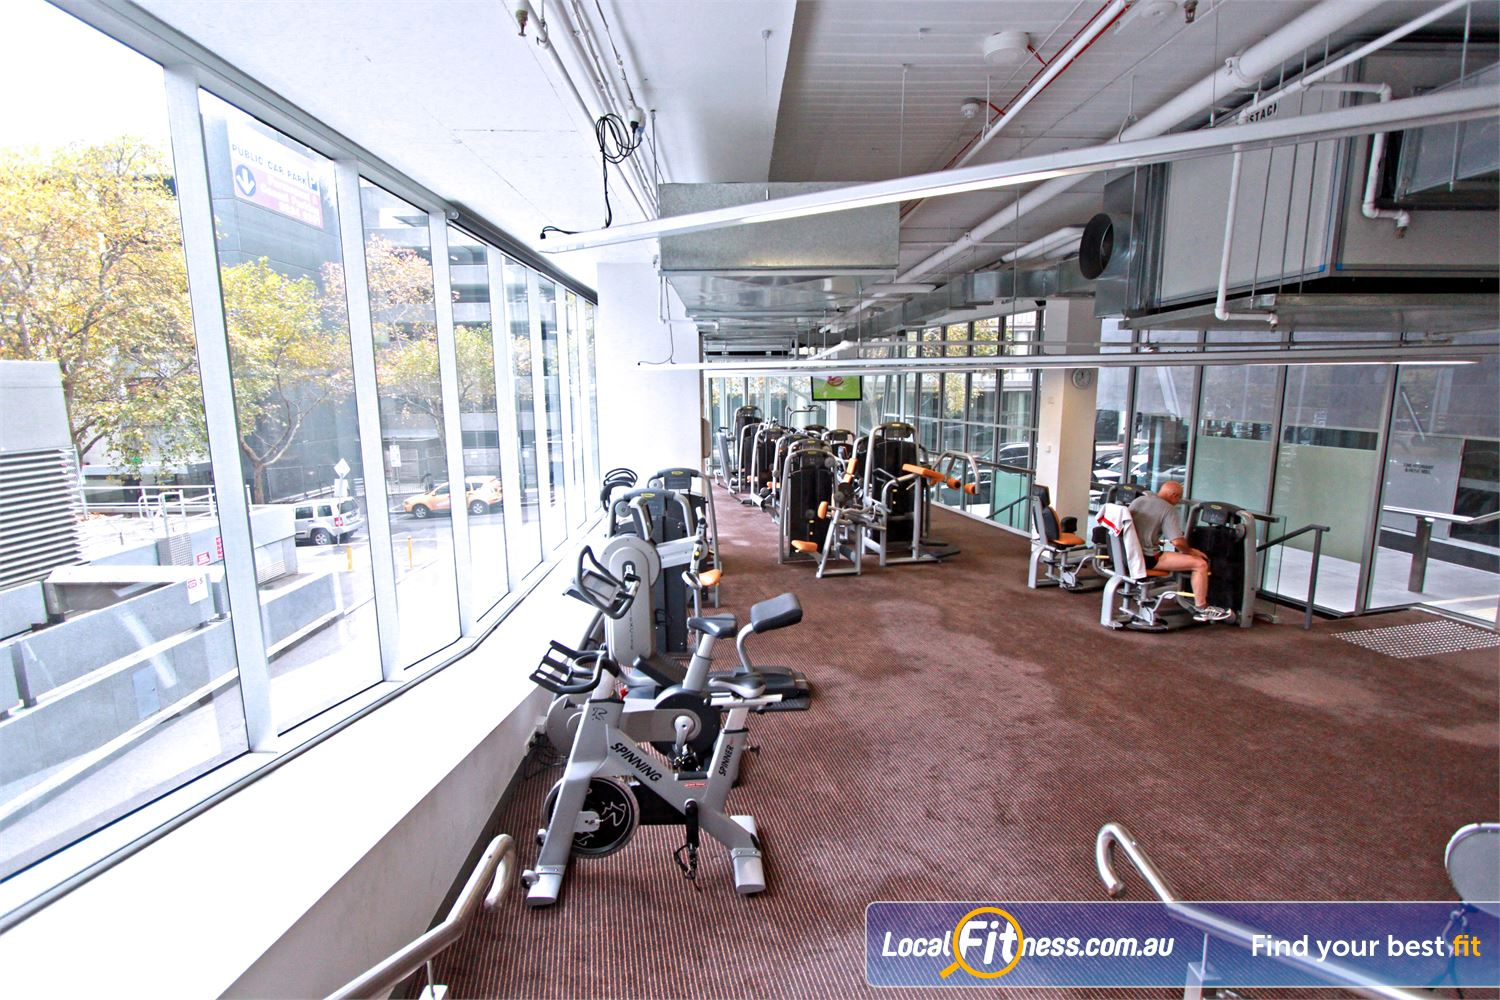 South Pacific Health Clubs Near East Melbourne State of the art equipment from Technogym.